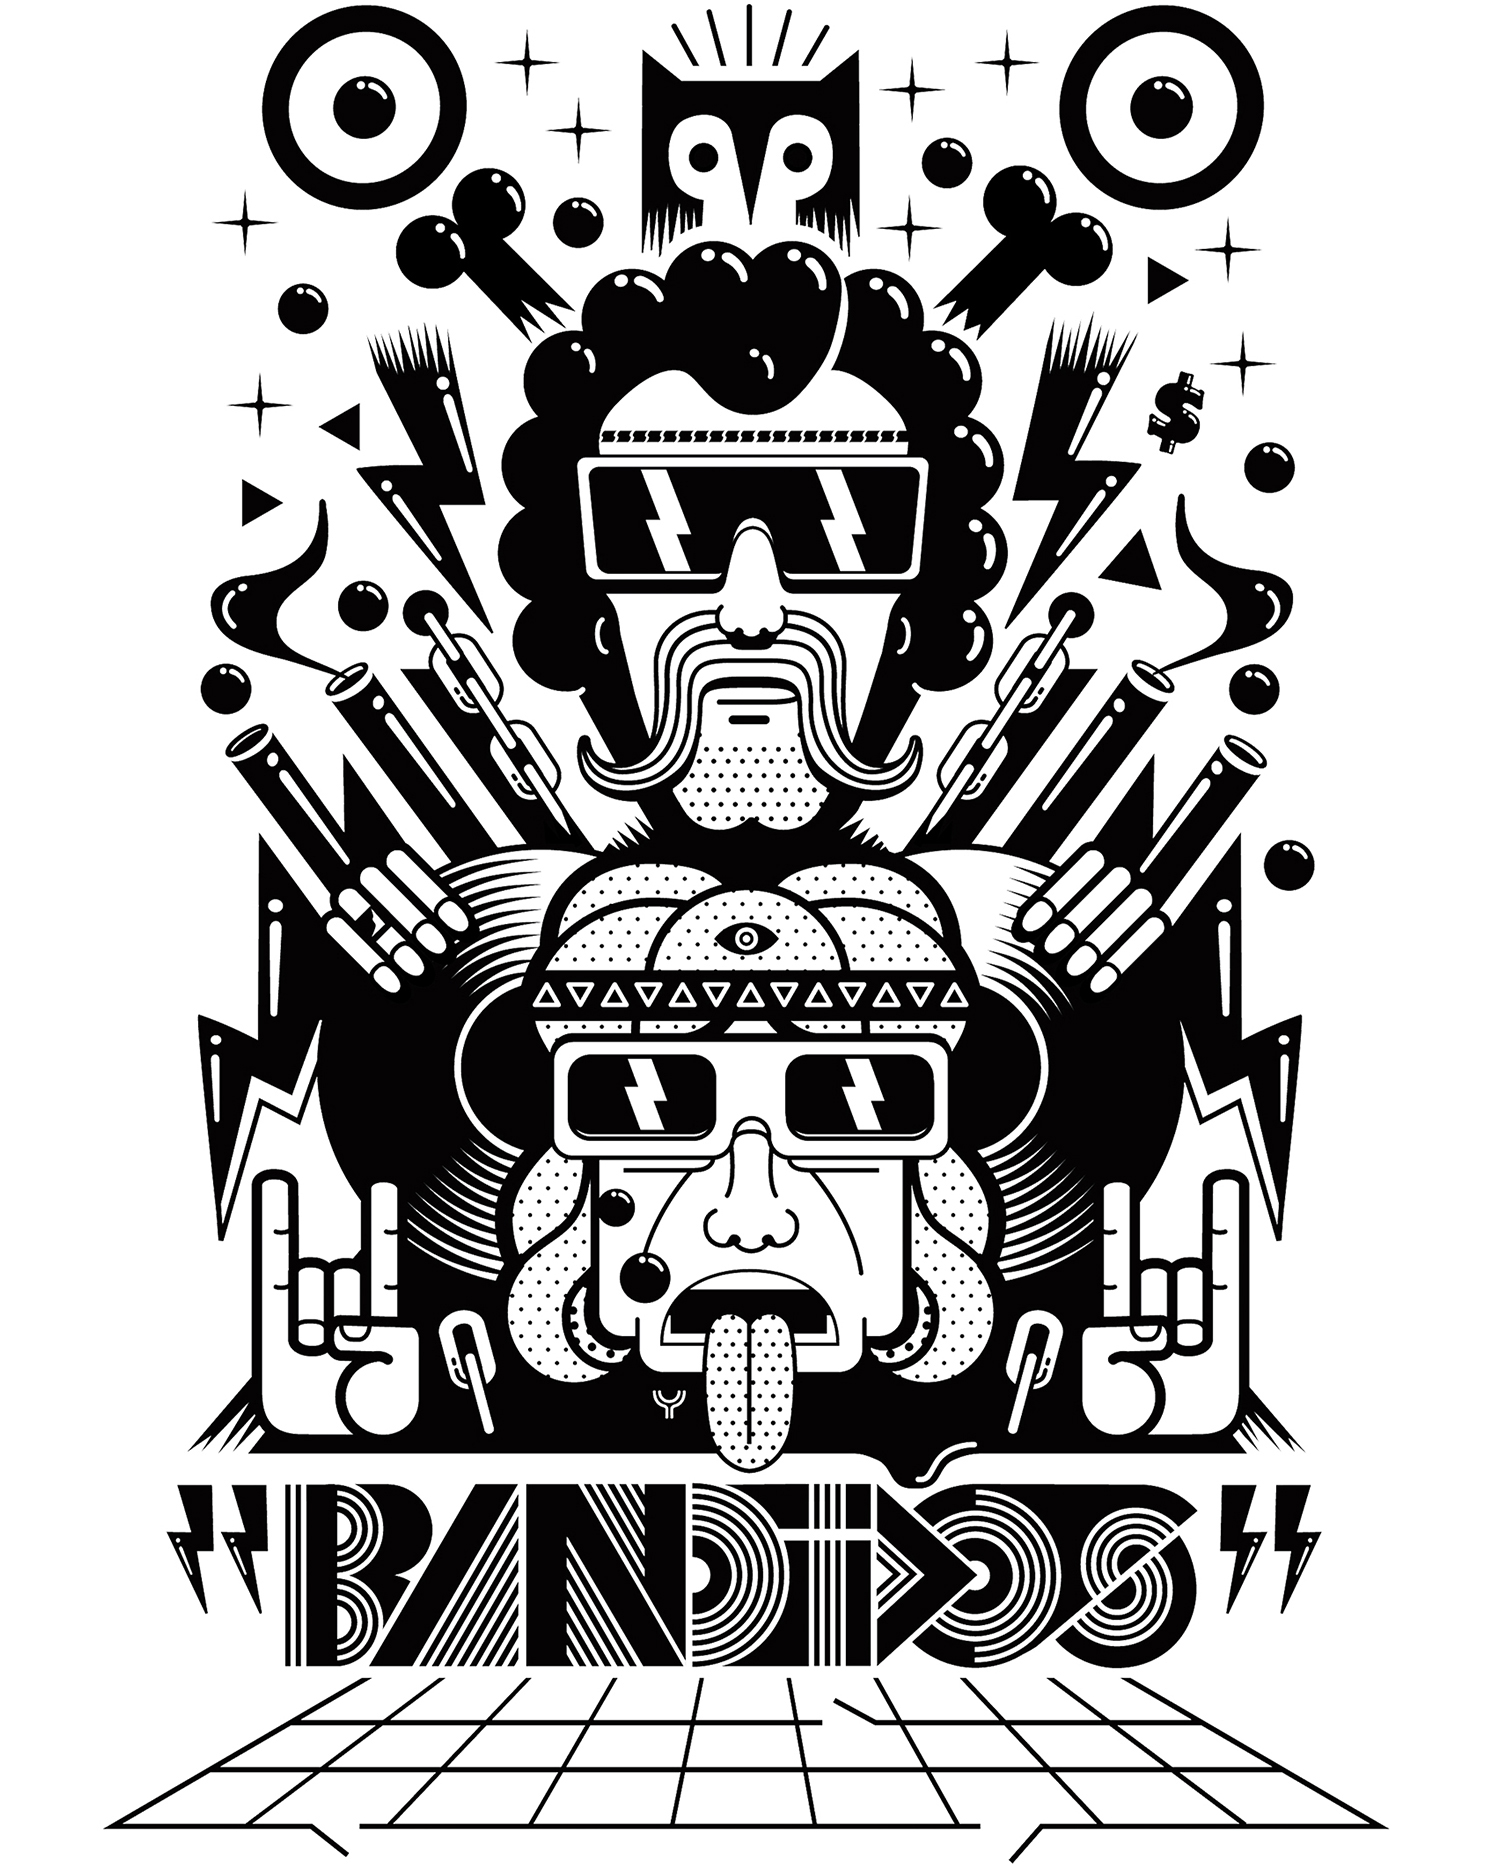 BANDIDOS  Illustration to be used in t-shirts, posters and myspace of Bandidos Dj's and music producers.